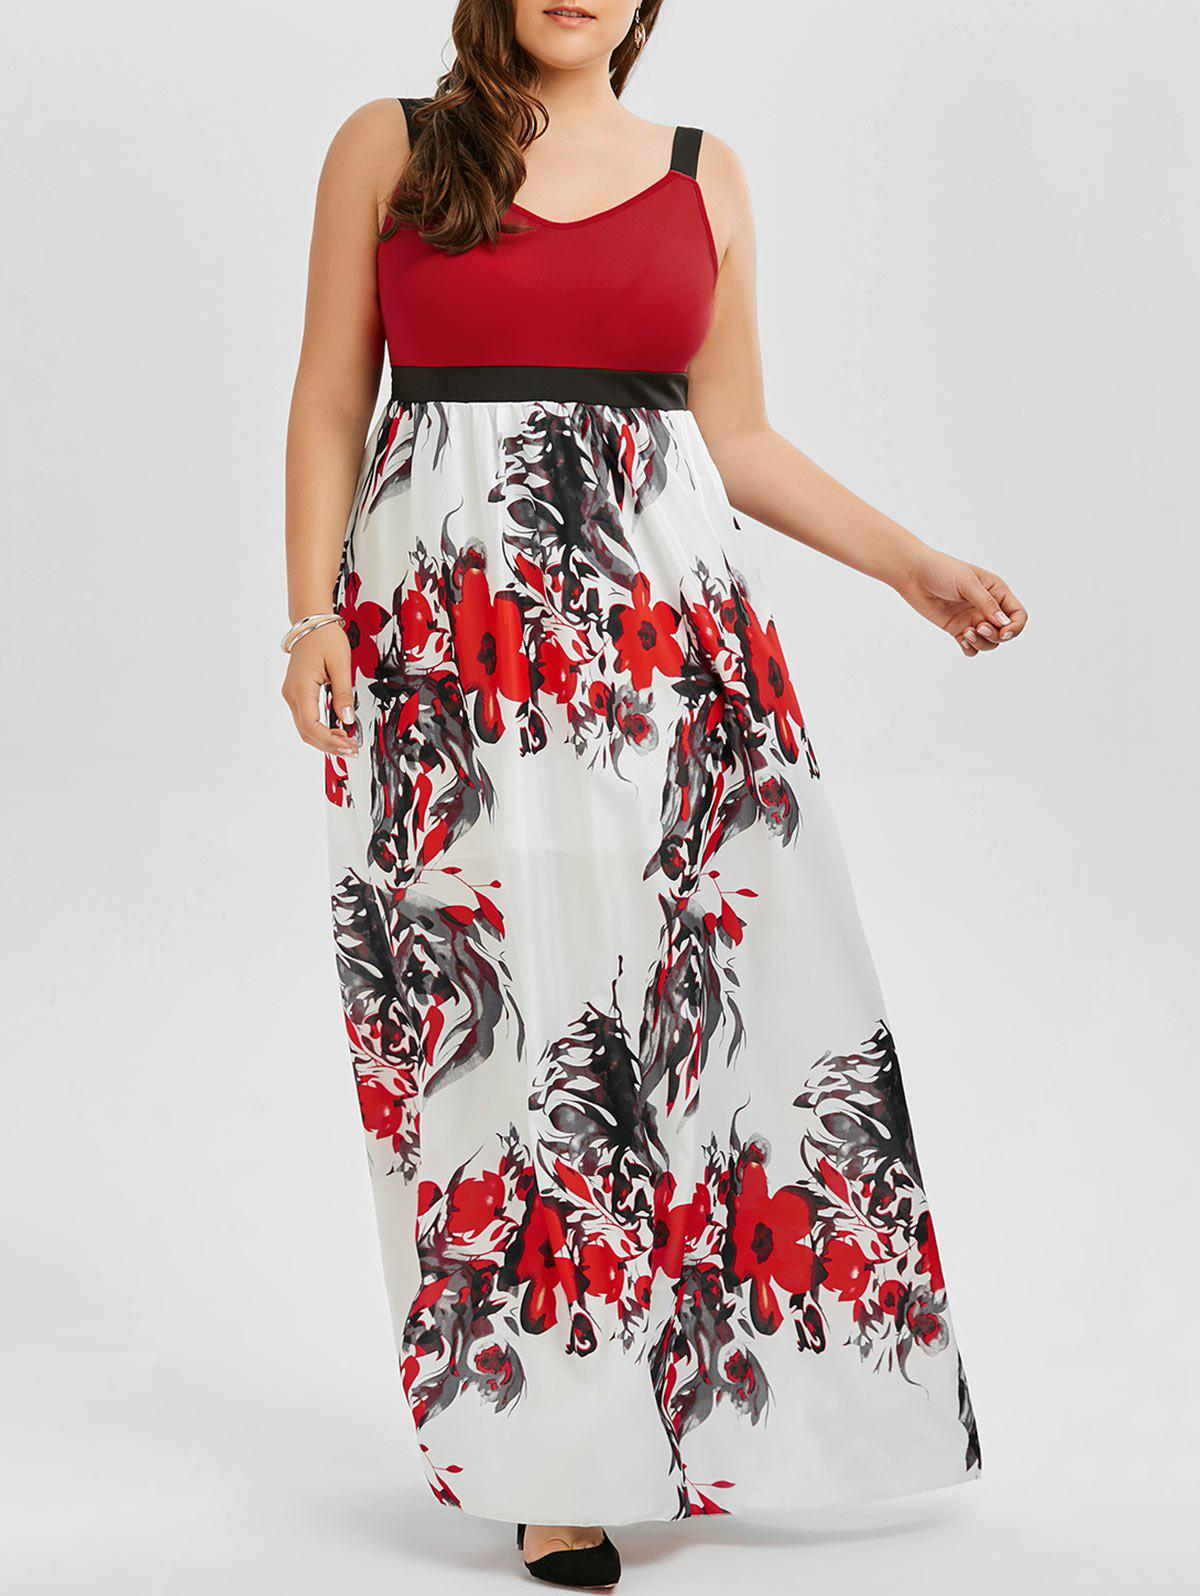 Floral A Line Maxi Plus Size Prom DressWOMEN<br><br>Size: 4XL; Color: COLORMIX; Style: Cute; Material: Polyester; Silhouette: A-Line; Dresses Length: Ankle-Length; Neckline: Spaghetti Strap; Sleeve Length: Sleeveless; Pattern Type: Floral; With Belt: No; Season: Summer; Weight: 0.3200kg; Package Contents: 1 x Dress;